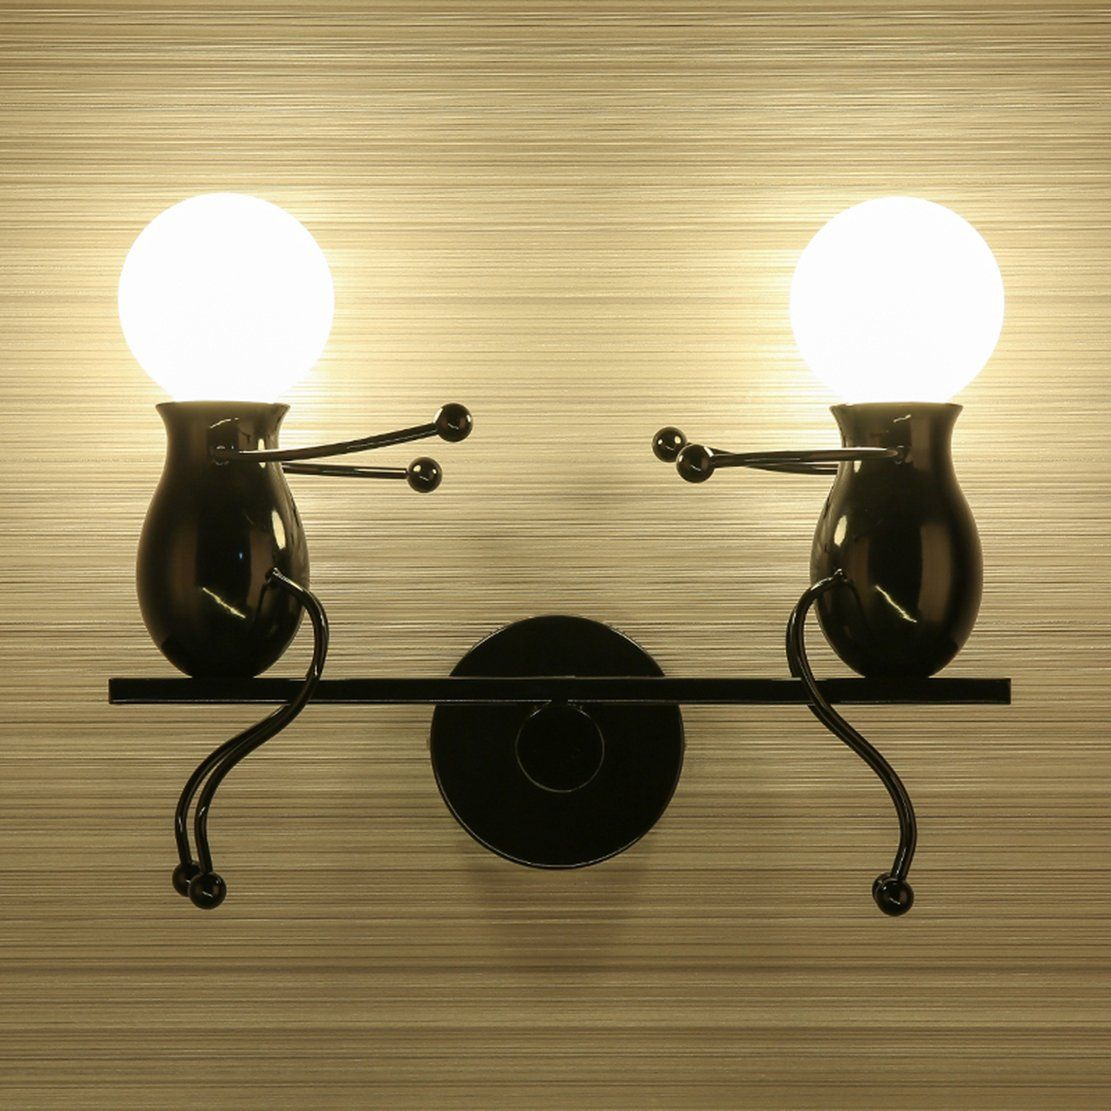 southpo led wall light fixtures childhood seesaw double little people wall lamps bedroom modern creative decor d lamp indoor sconce lighting wall lamps bedroom